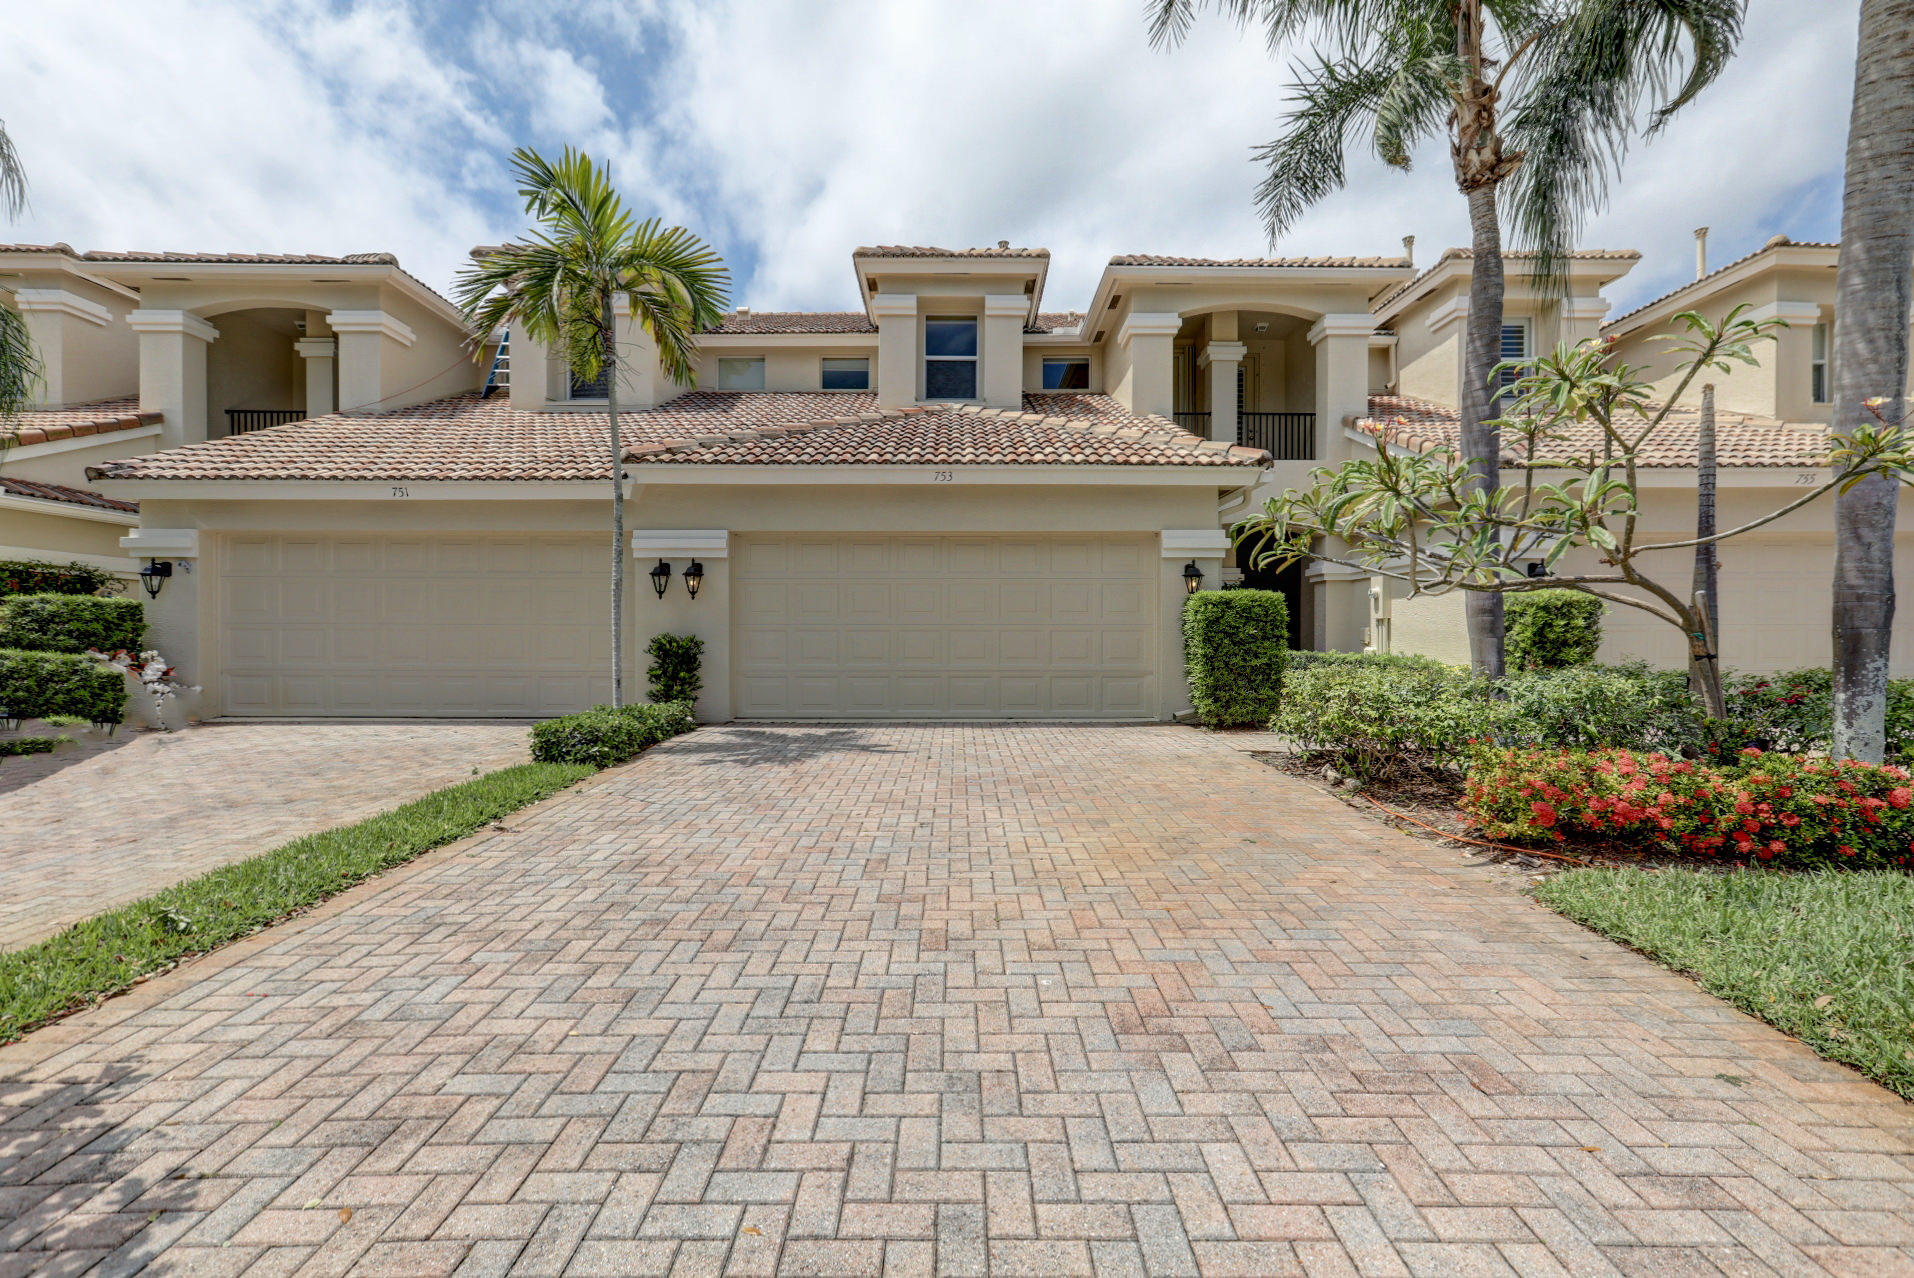 753 Cable Beach Lane, North Palm Beach, Florida 33410, 3 Bedrooms Bedrooms, ,2.1 BathroomsBathrooms,A,Townhouse,Cable Beach,RX-10520084